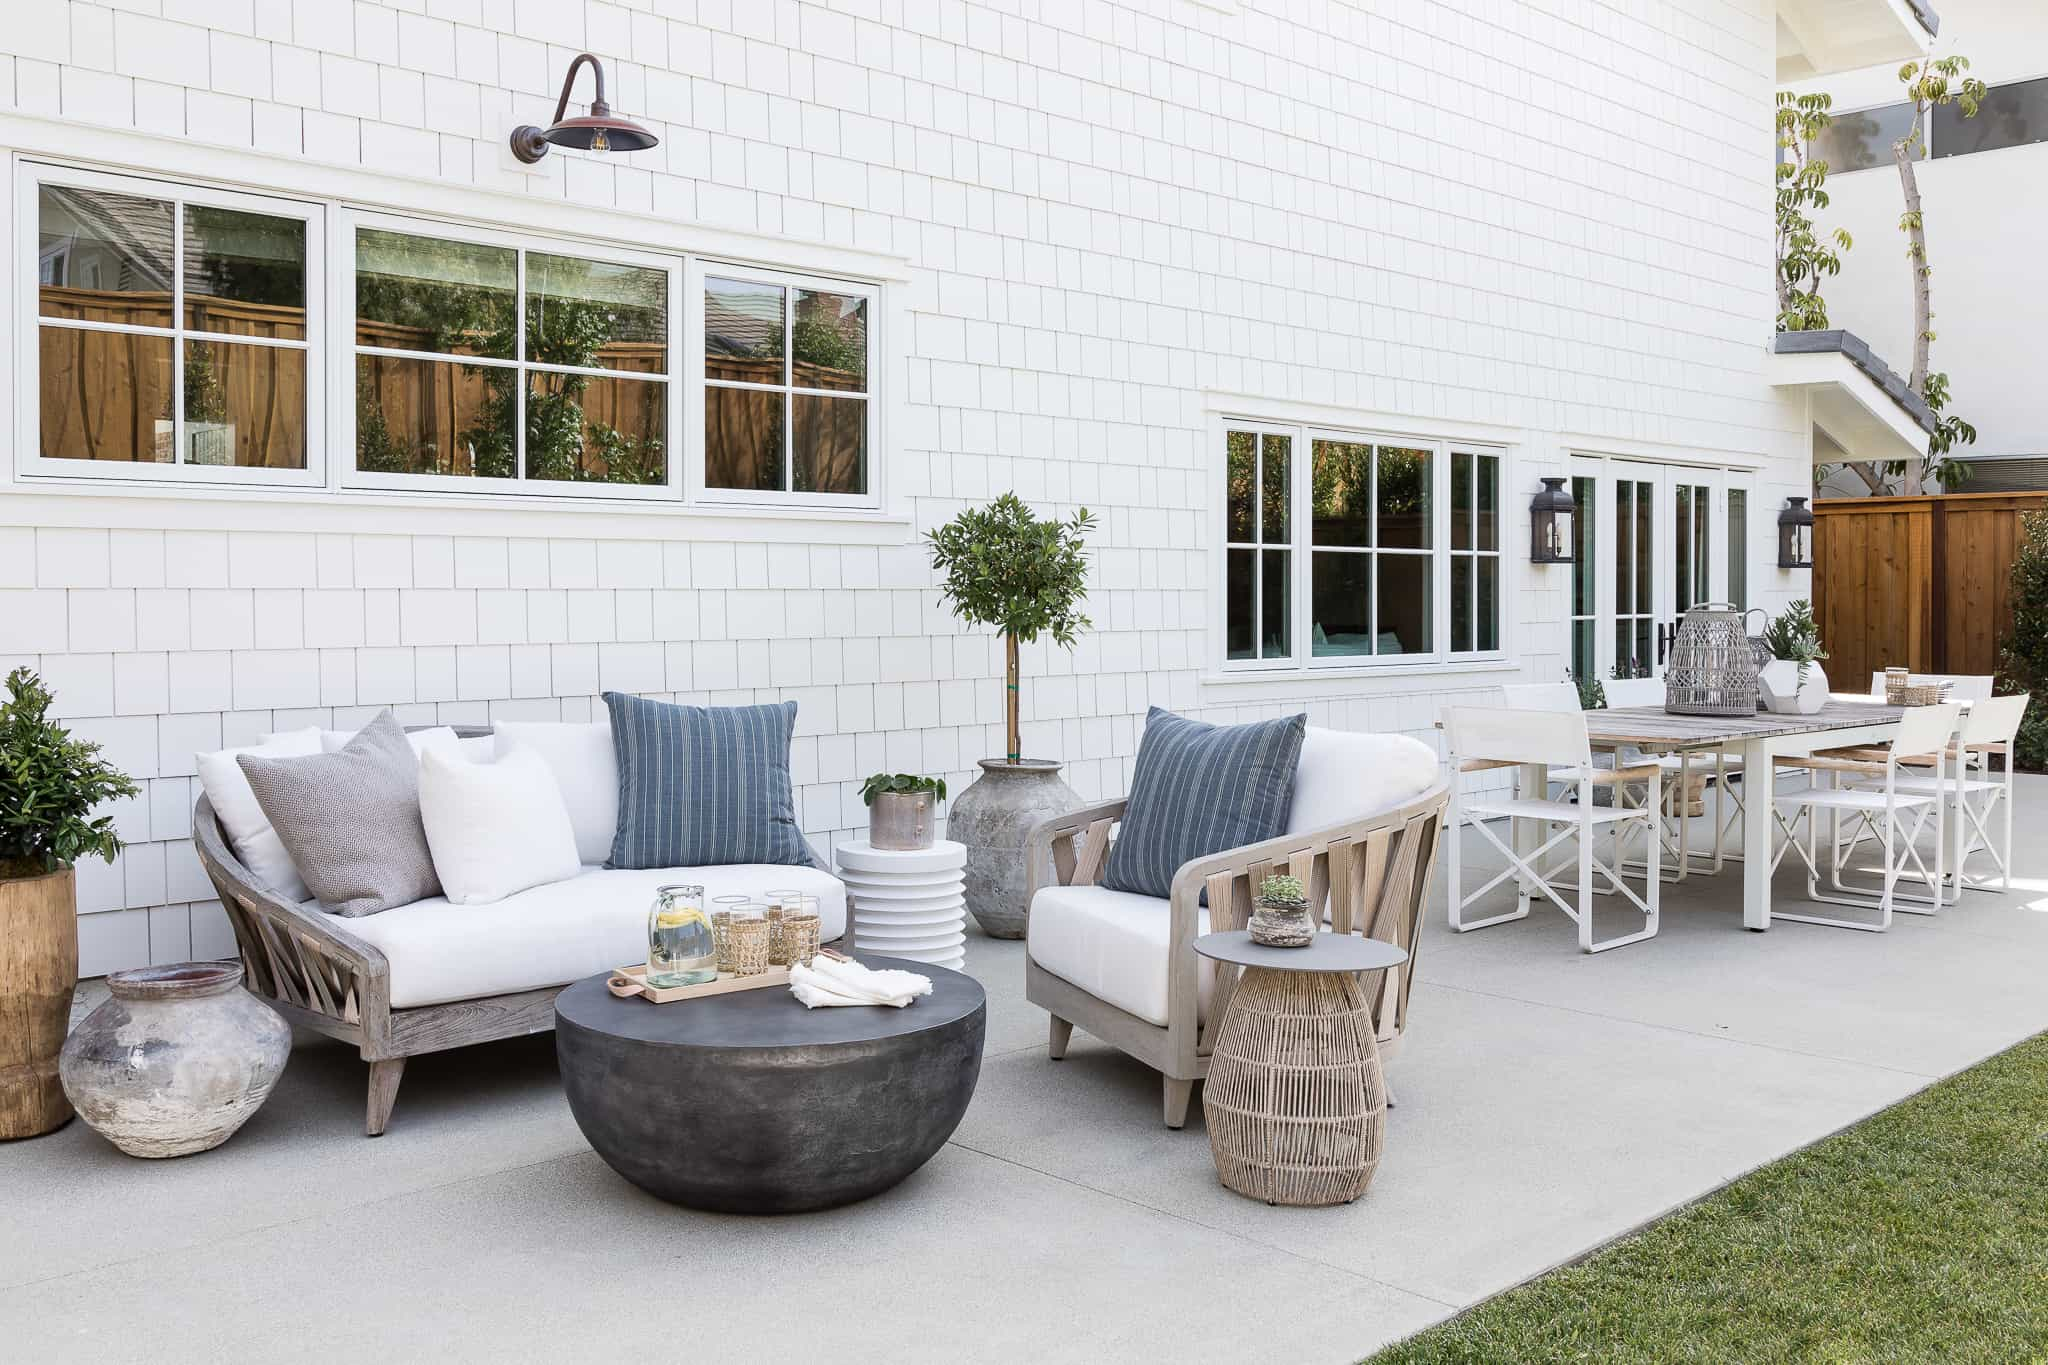 Outdoor Lounge and Dining Area - Port Newport Project - Mindy Gayer Design Co.